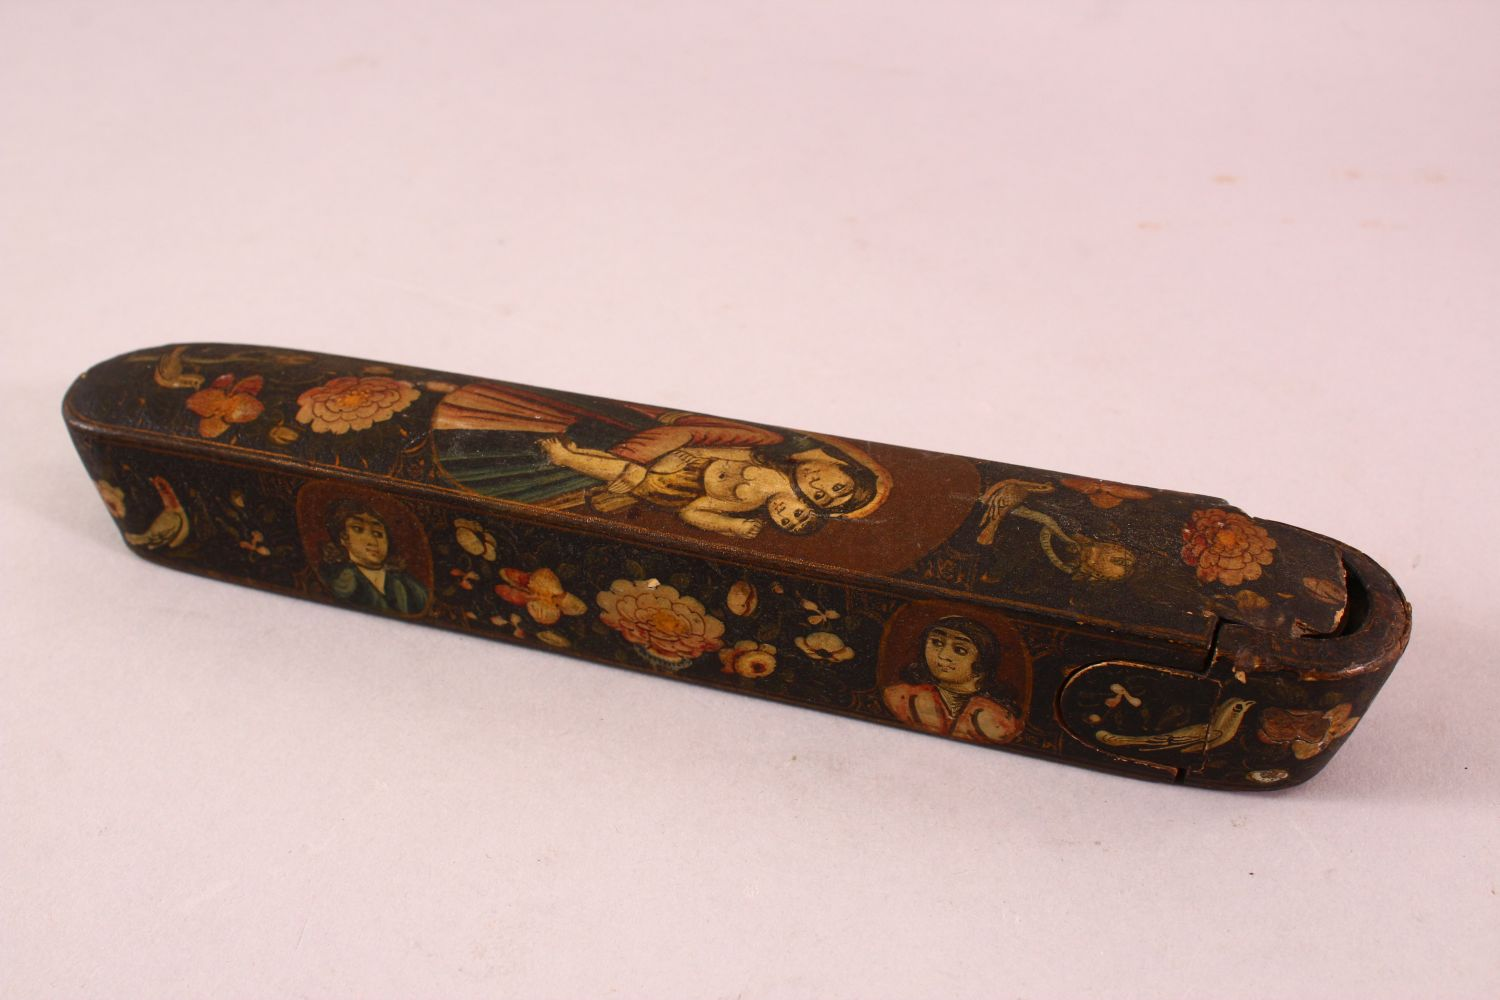 A PERSIAN QAJAR LACQUERED PEN BOX containing the brass inkwell, 23cm long. - Image 2 of 5